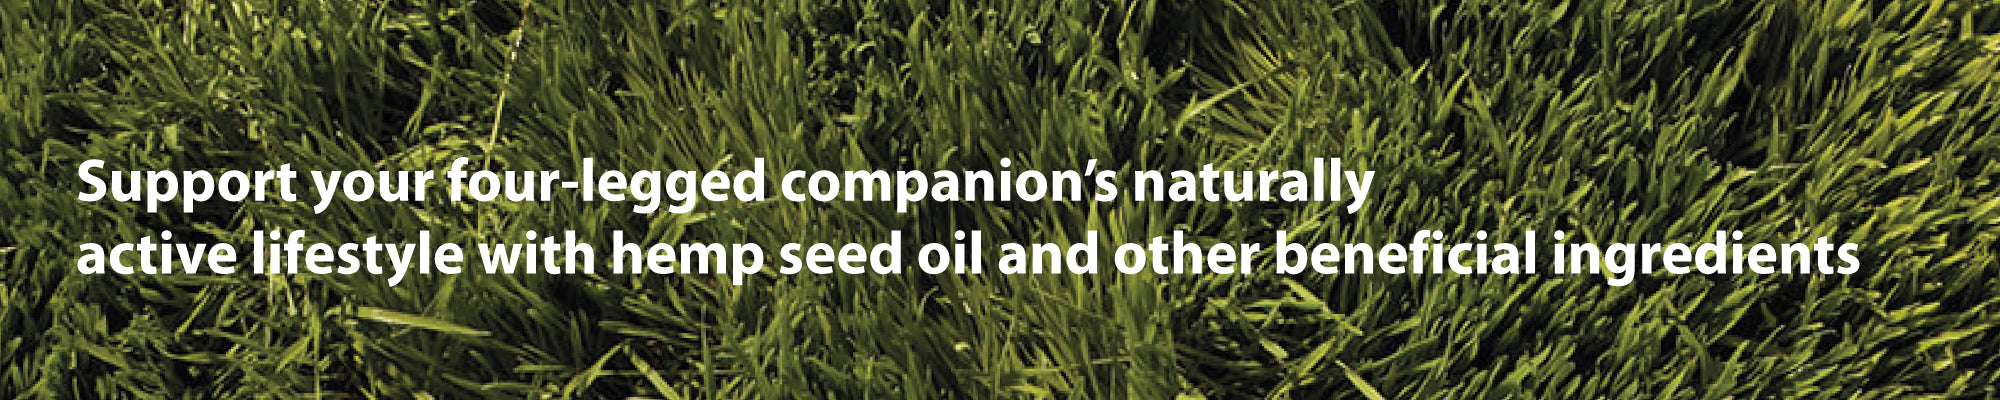 Support your four-legged companion's naturally  active lifestyle with hemp seed oil and other beneficial ingredients